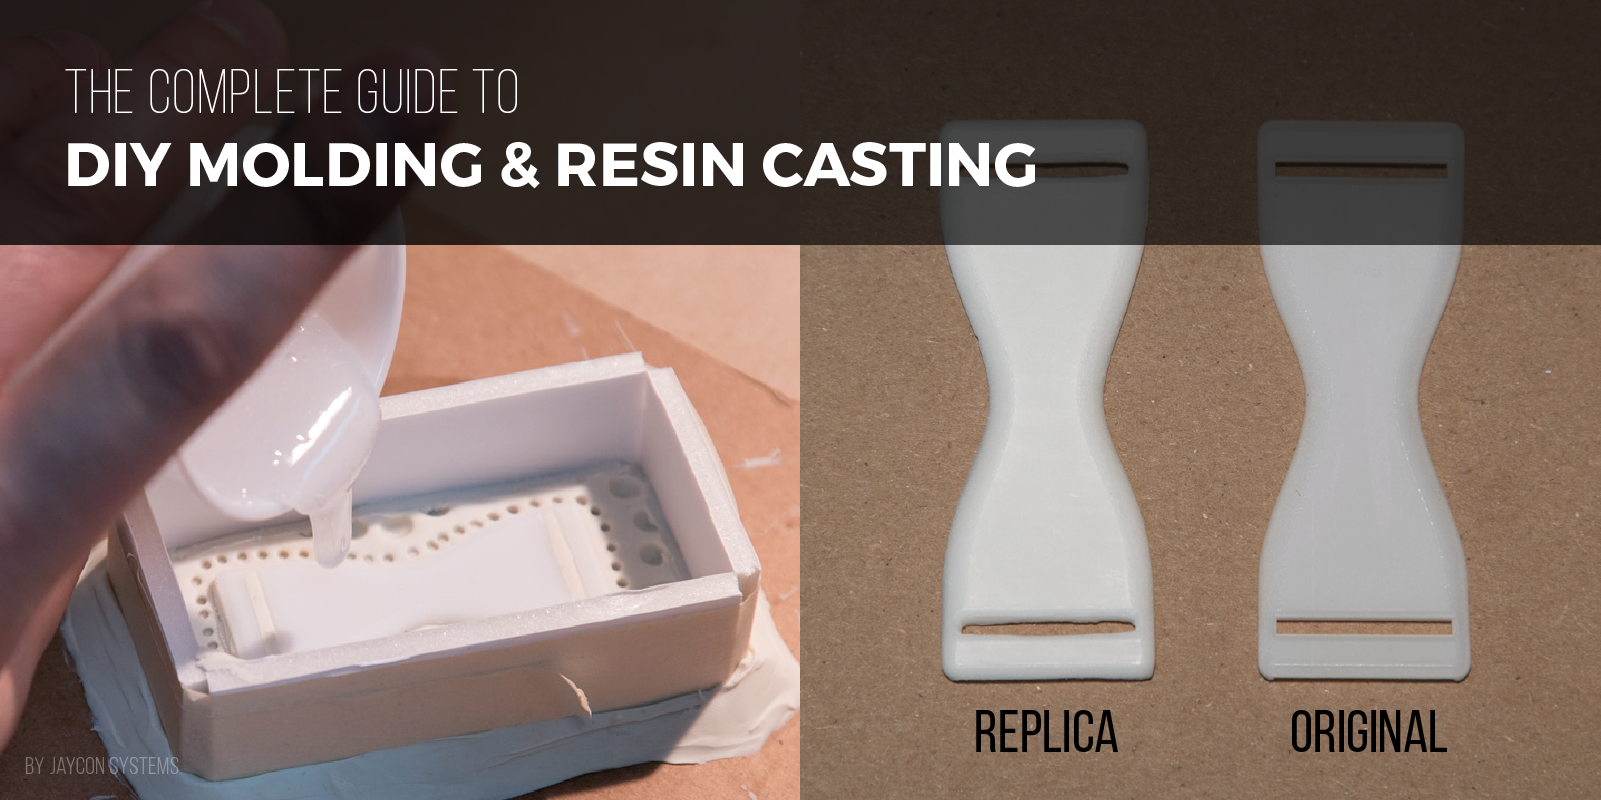 The Complete Guide to DIY Molding & Resin Casting - Jaycon Systems